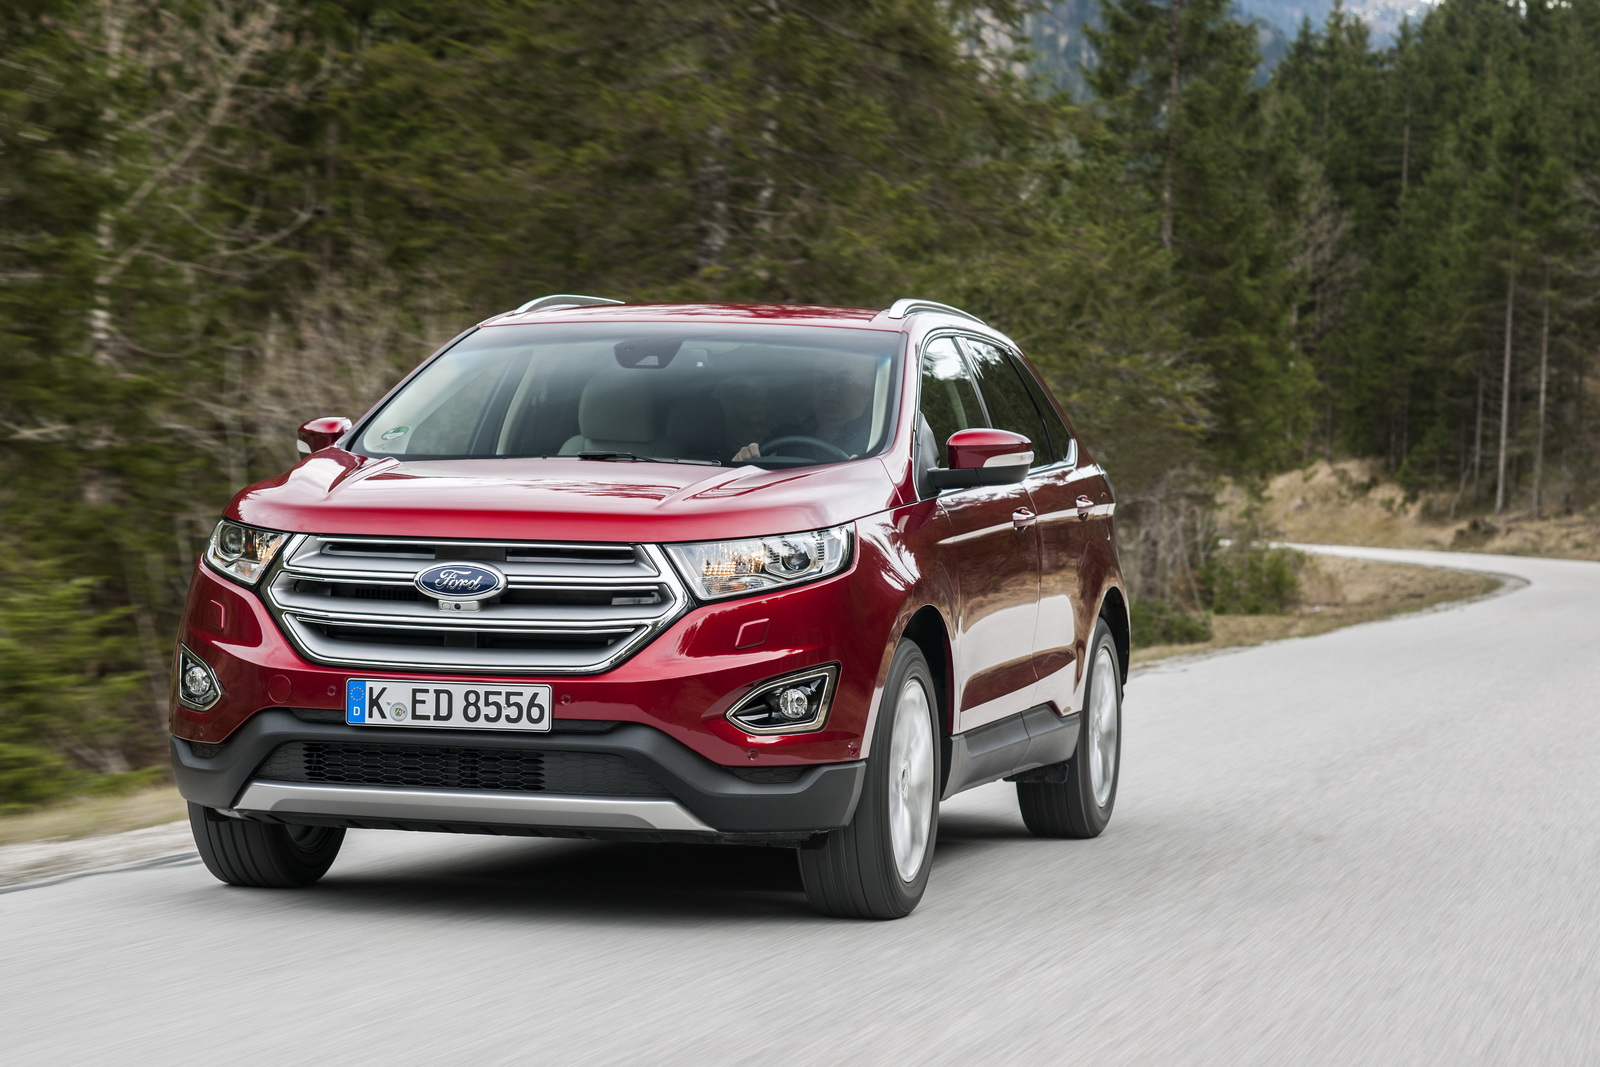 Europe's Ford Edge Premium SUV Hits The Market | Carscoops